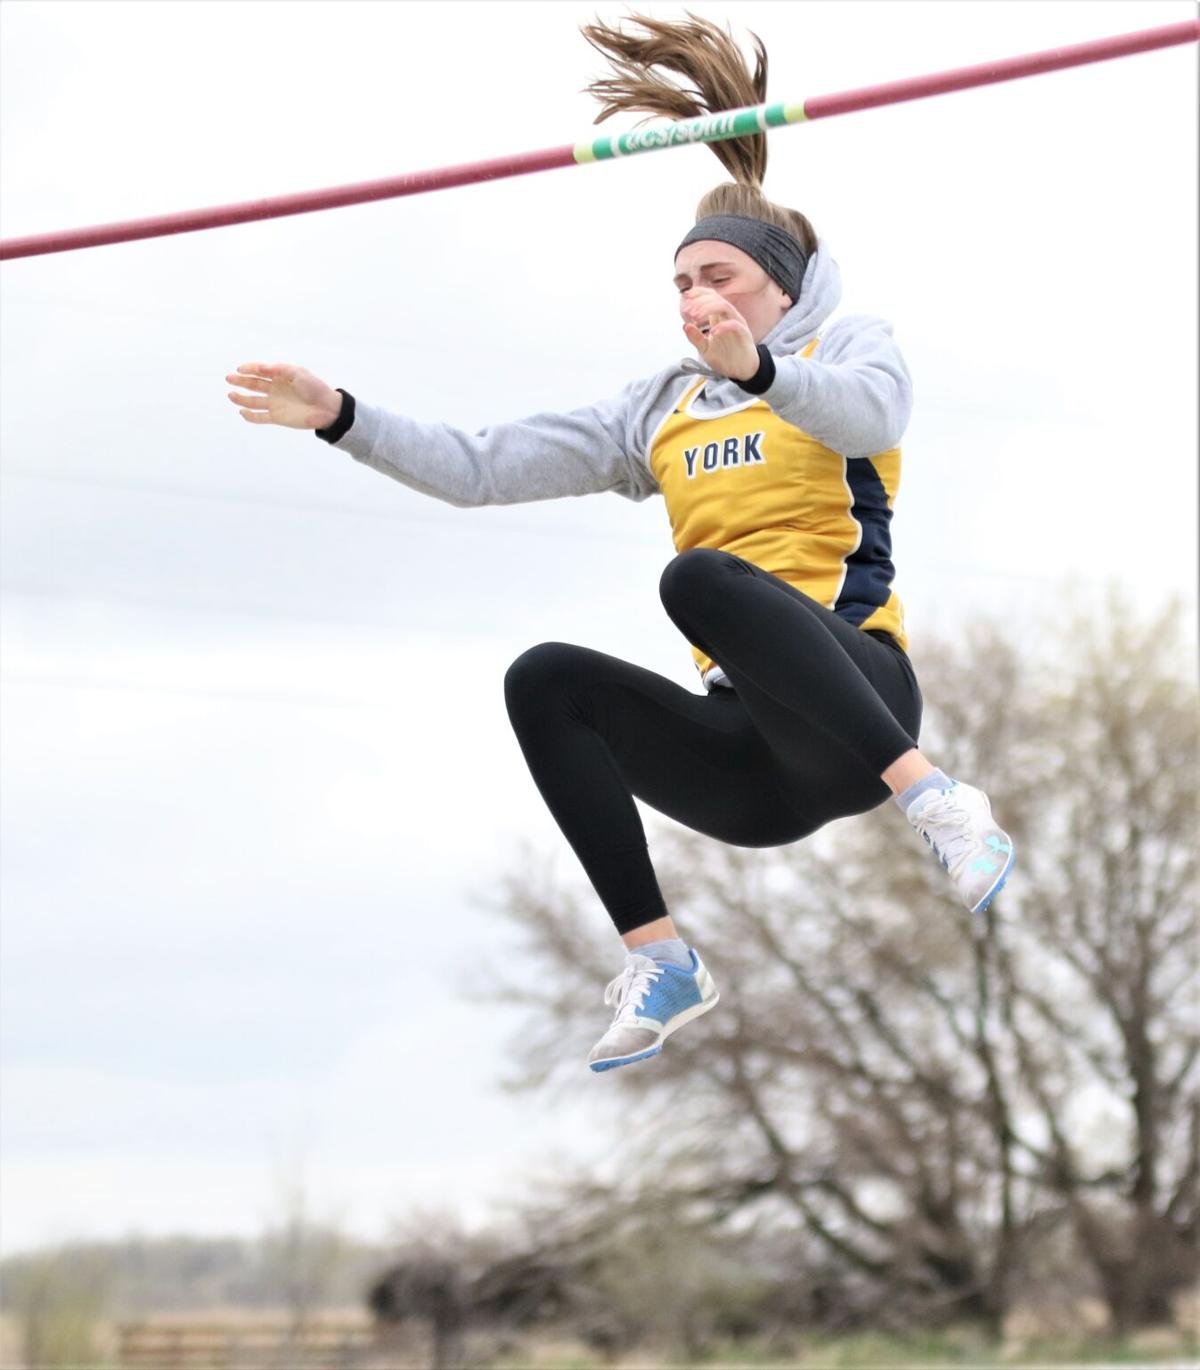 Melanie Driewer wins vault for Dukes at Central City